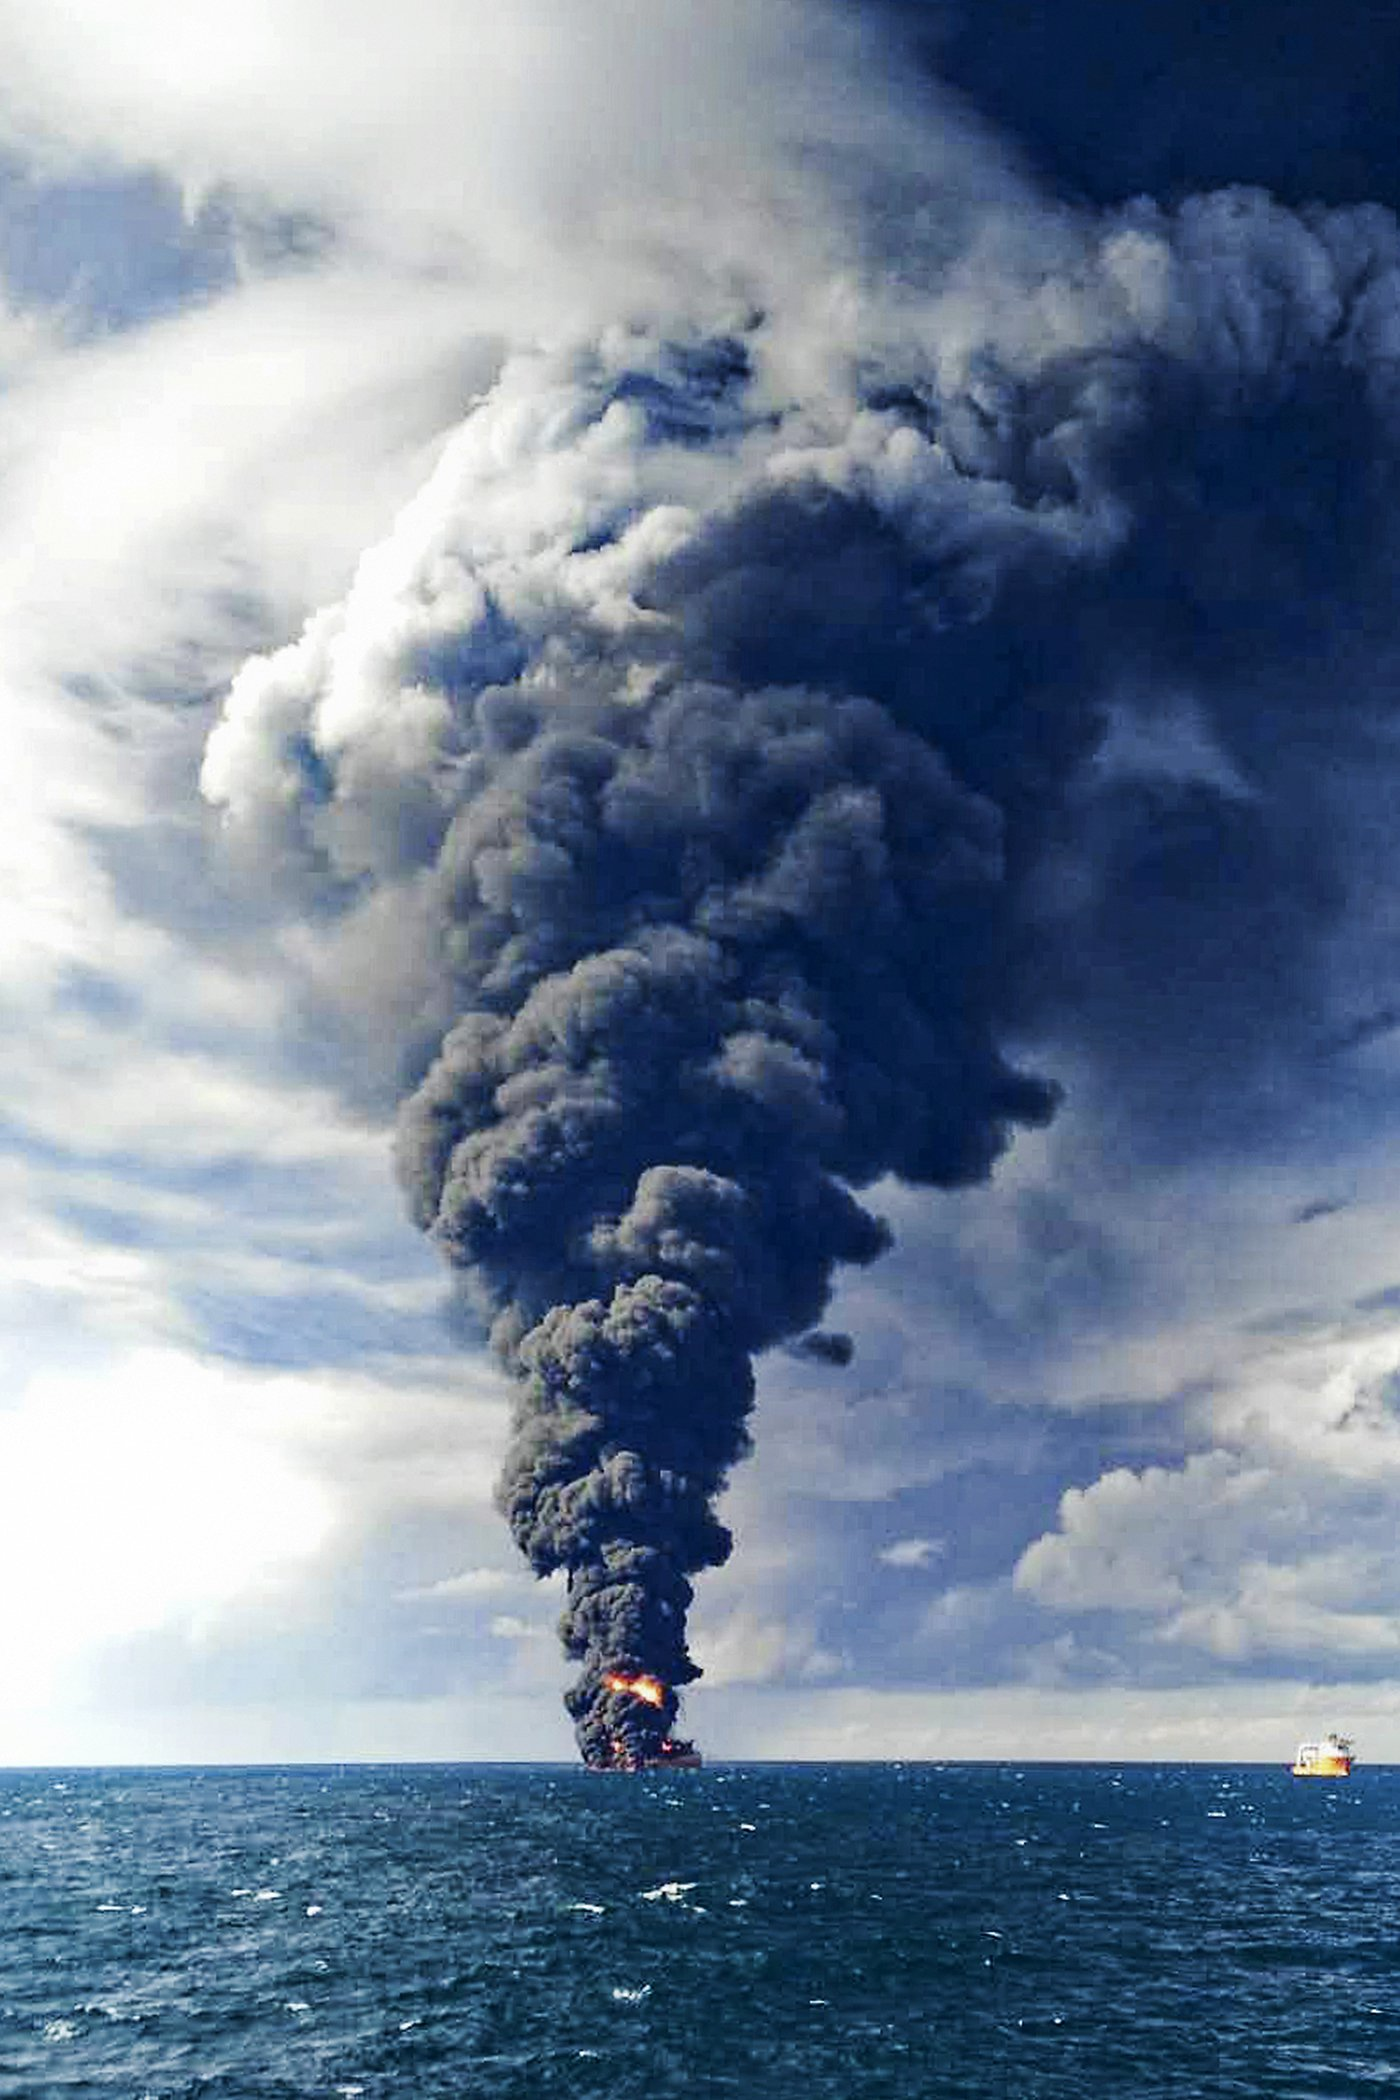 South-China-Sea-Oil-Explosion-FullFrame.jpg